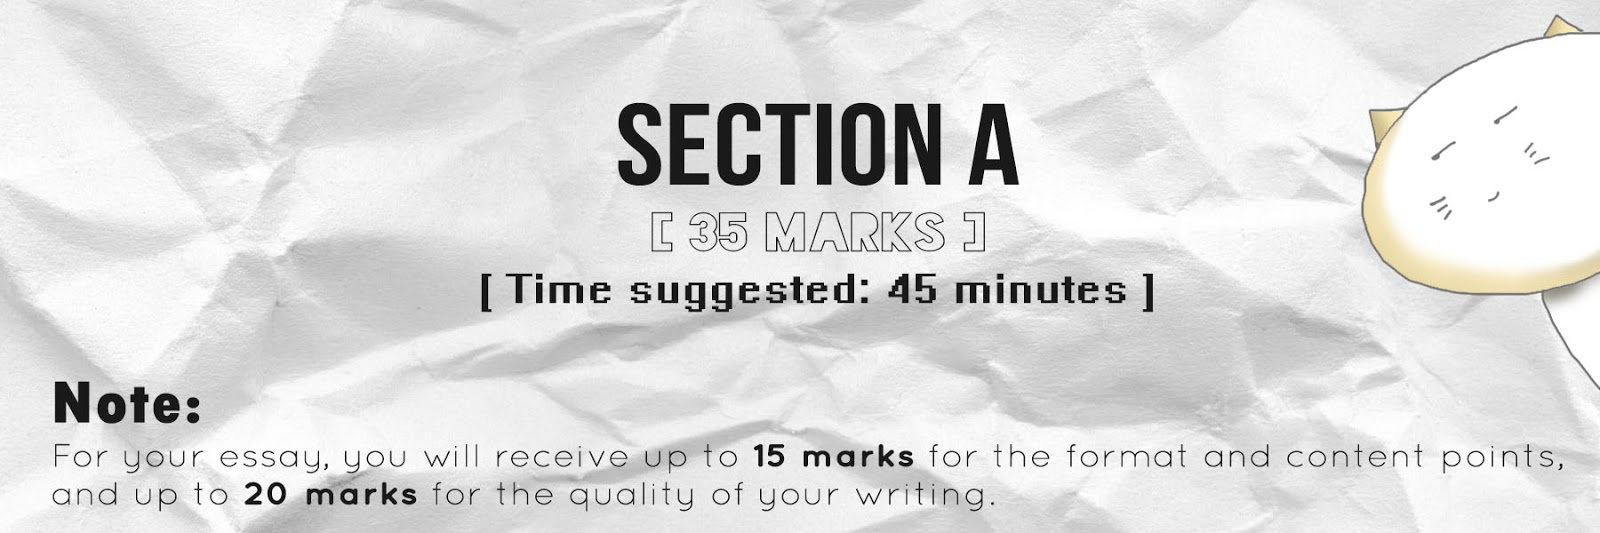 Types Of English Essays  A Modest Proposal Essay also Learning English Essay Ponponproduction Spm English Essay Examples Argumentative Essay Topics On Health